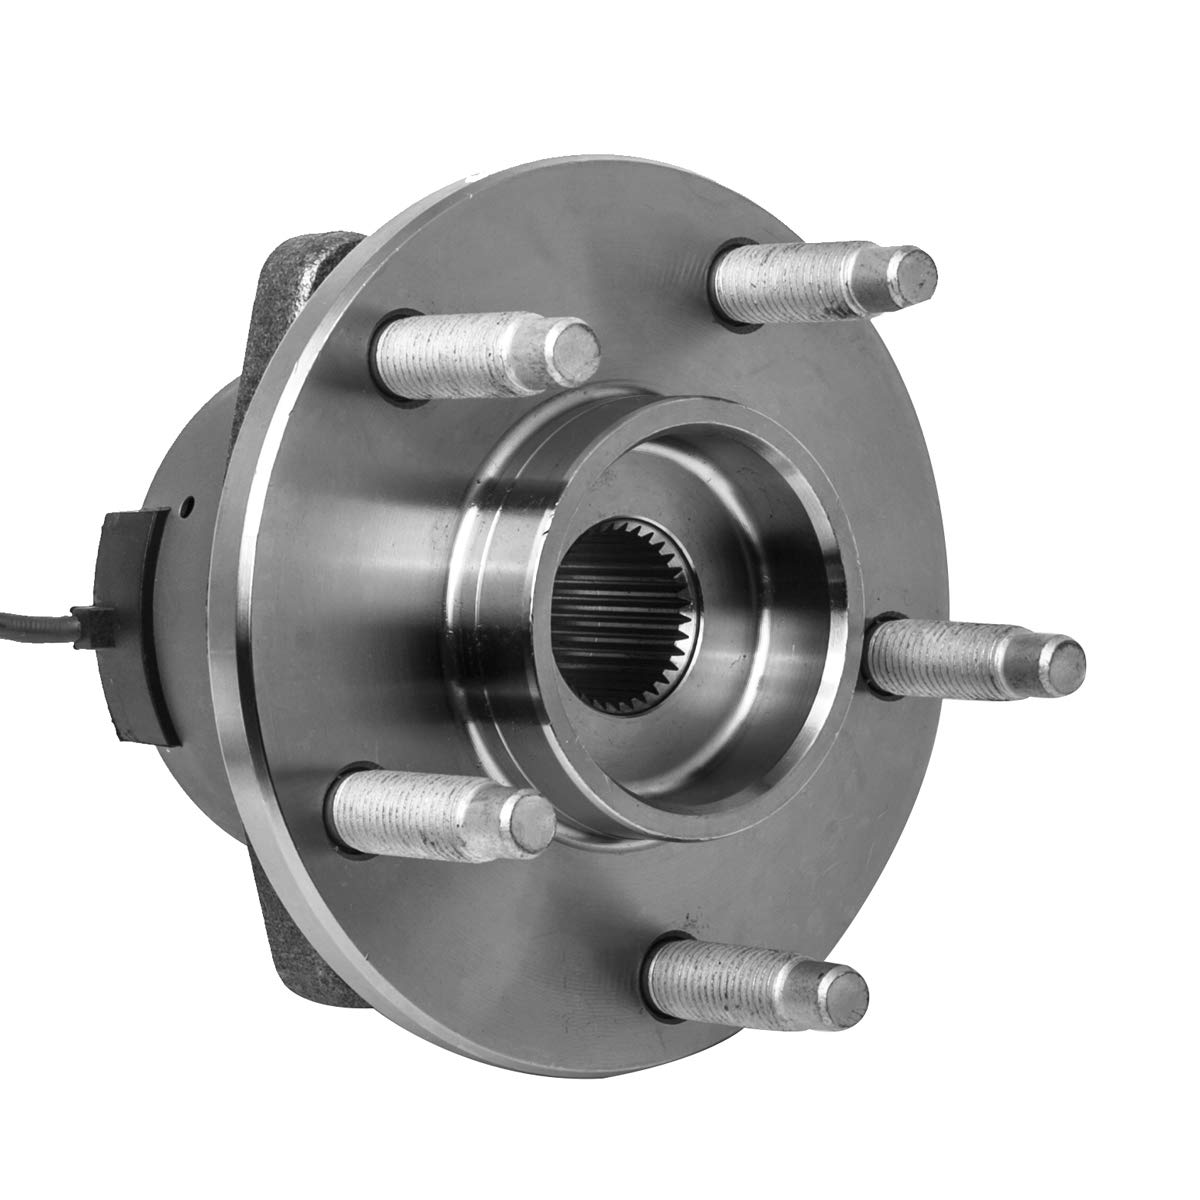 Front Wheel Hub and Bearing Assembly Left or Right Compatible Chevrolet Cobalt HHR Pontiac G5 Saturn Ion Pontiac Pursuit AUQDD 513206 x2 5 Lug W//ABS